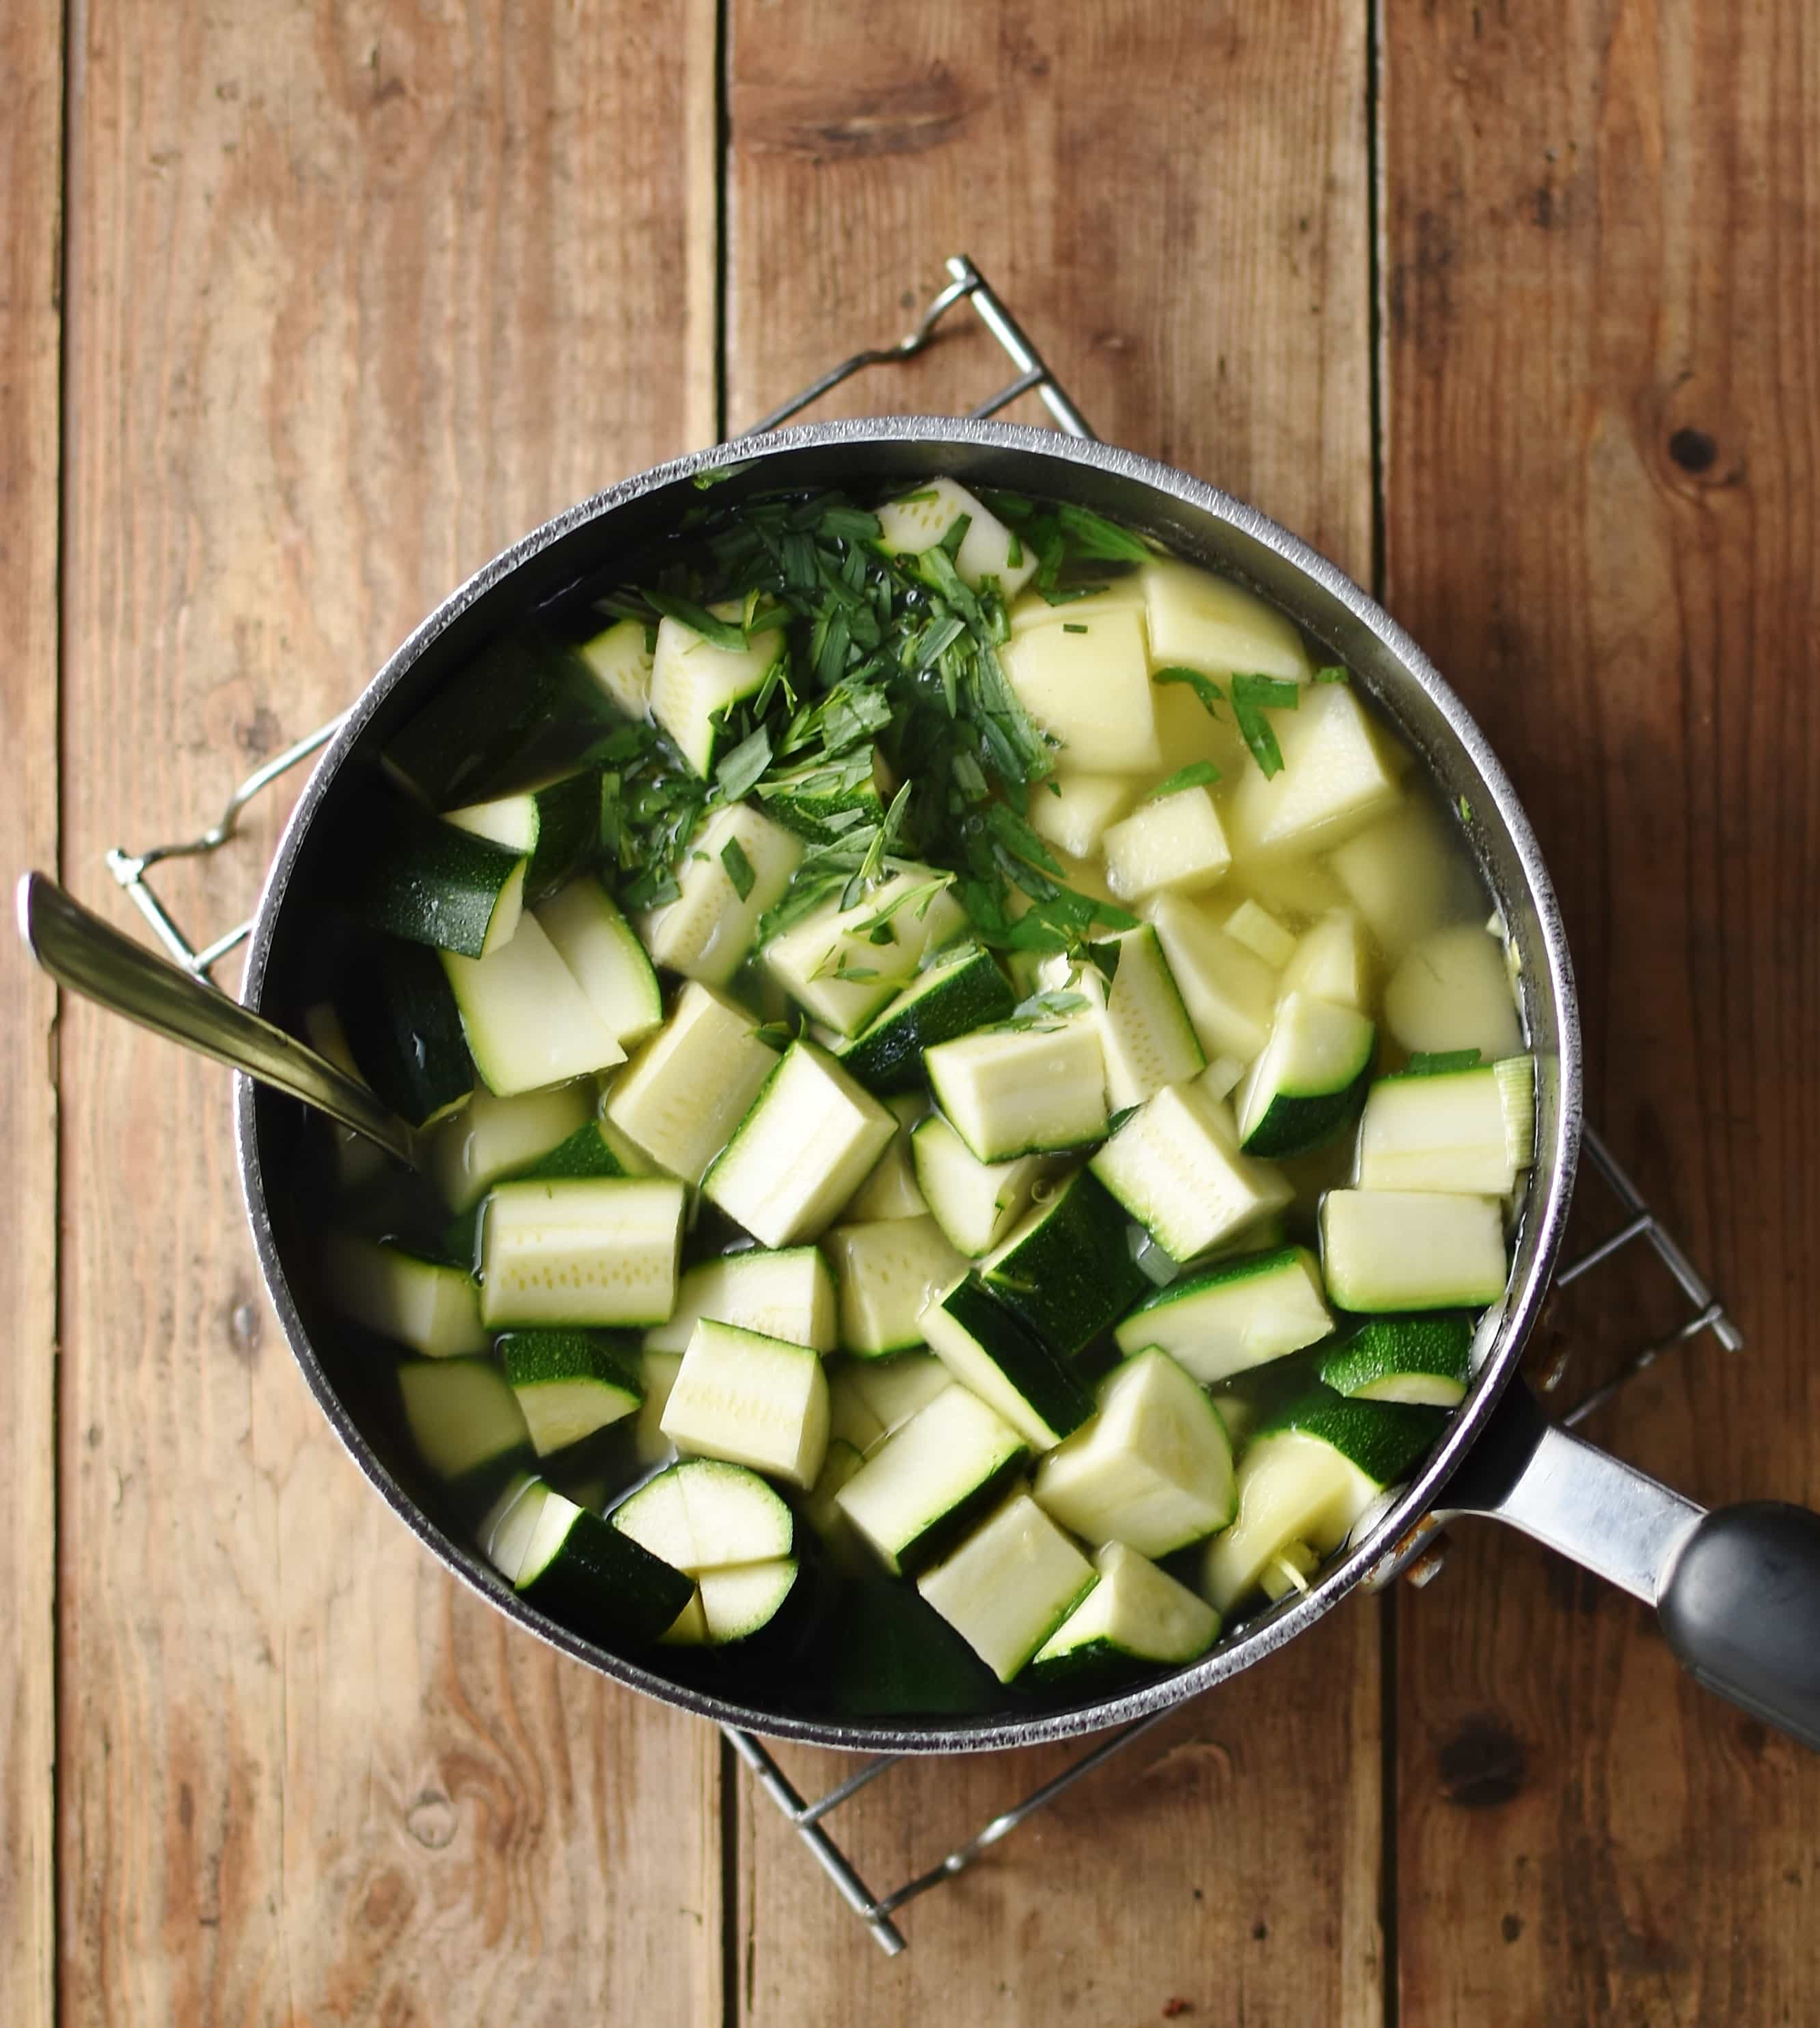 Cubed zucchini, potatoes and herbs in large pot filled with water.